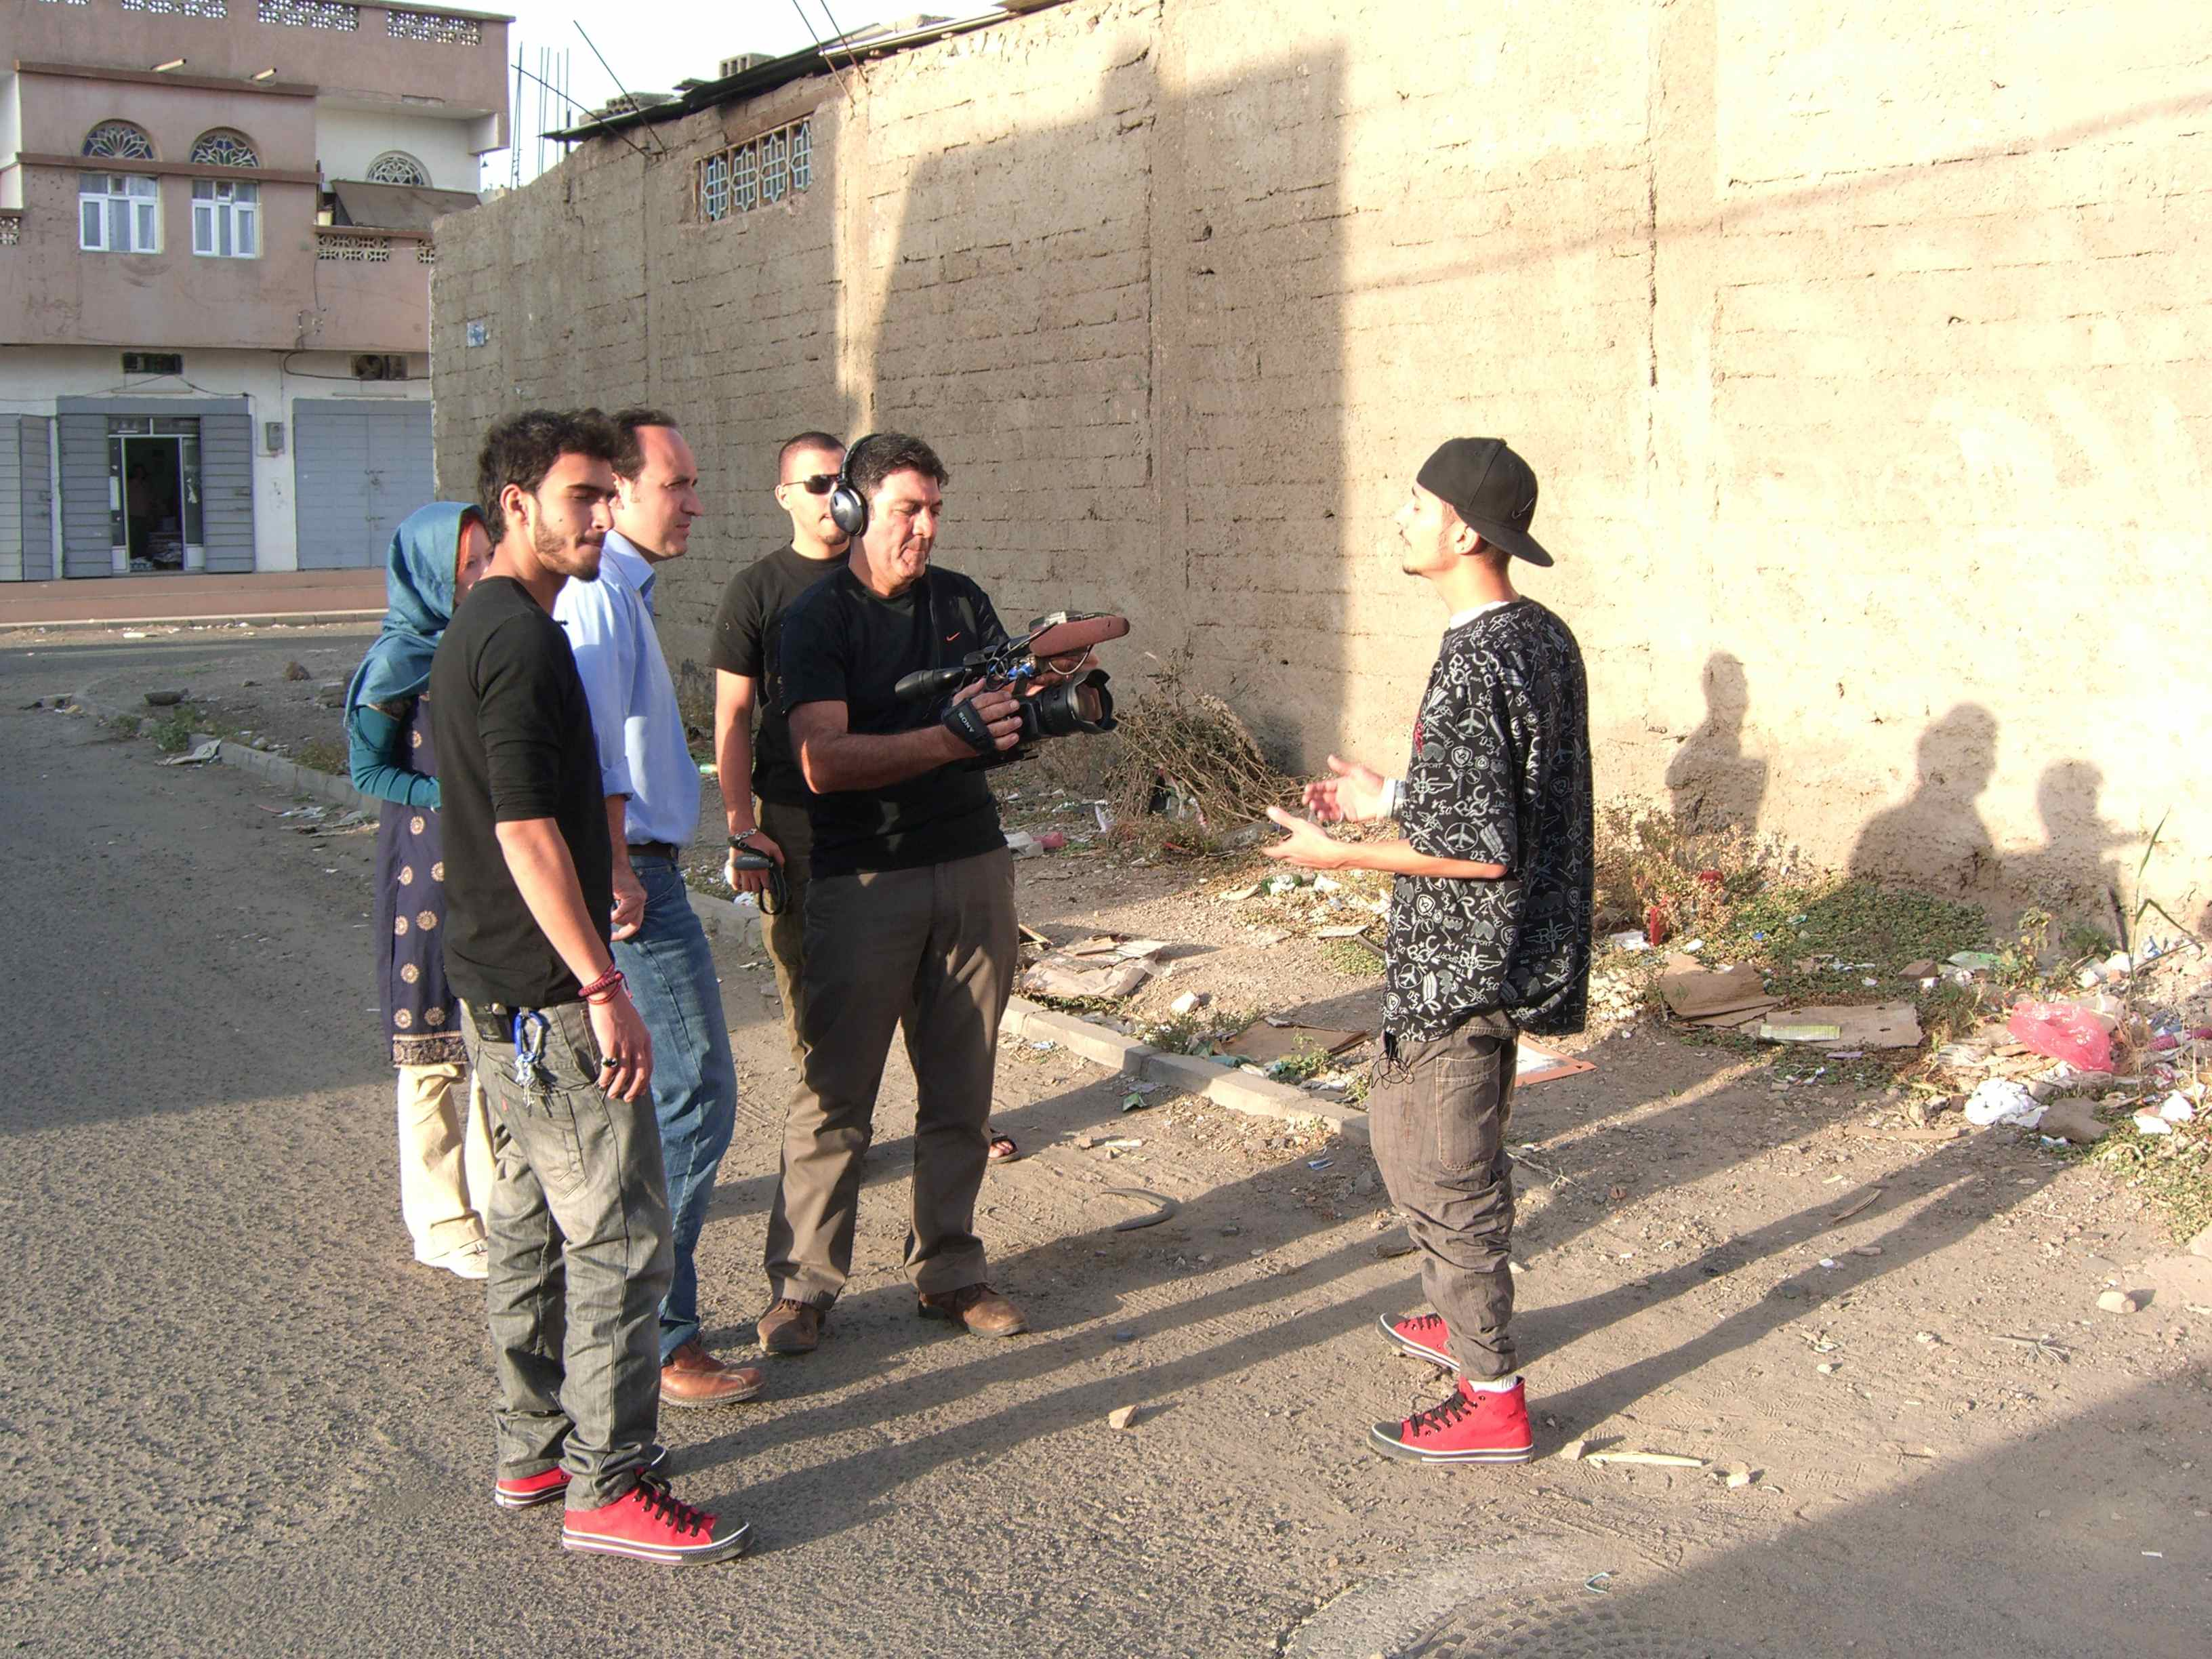 Photo CNN/Dane Kenny. Mohammed Jamjoom, producer Gena Somra and cameraman Farhad Shadravan interviewing rapper/producer Nadeem. Also in the picture is rapper Ziad.